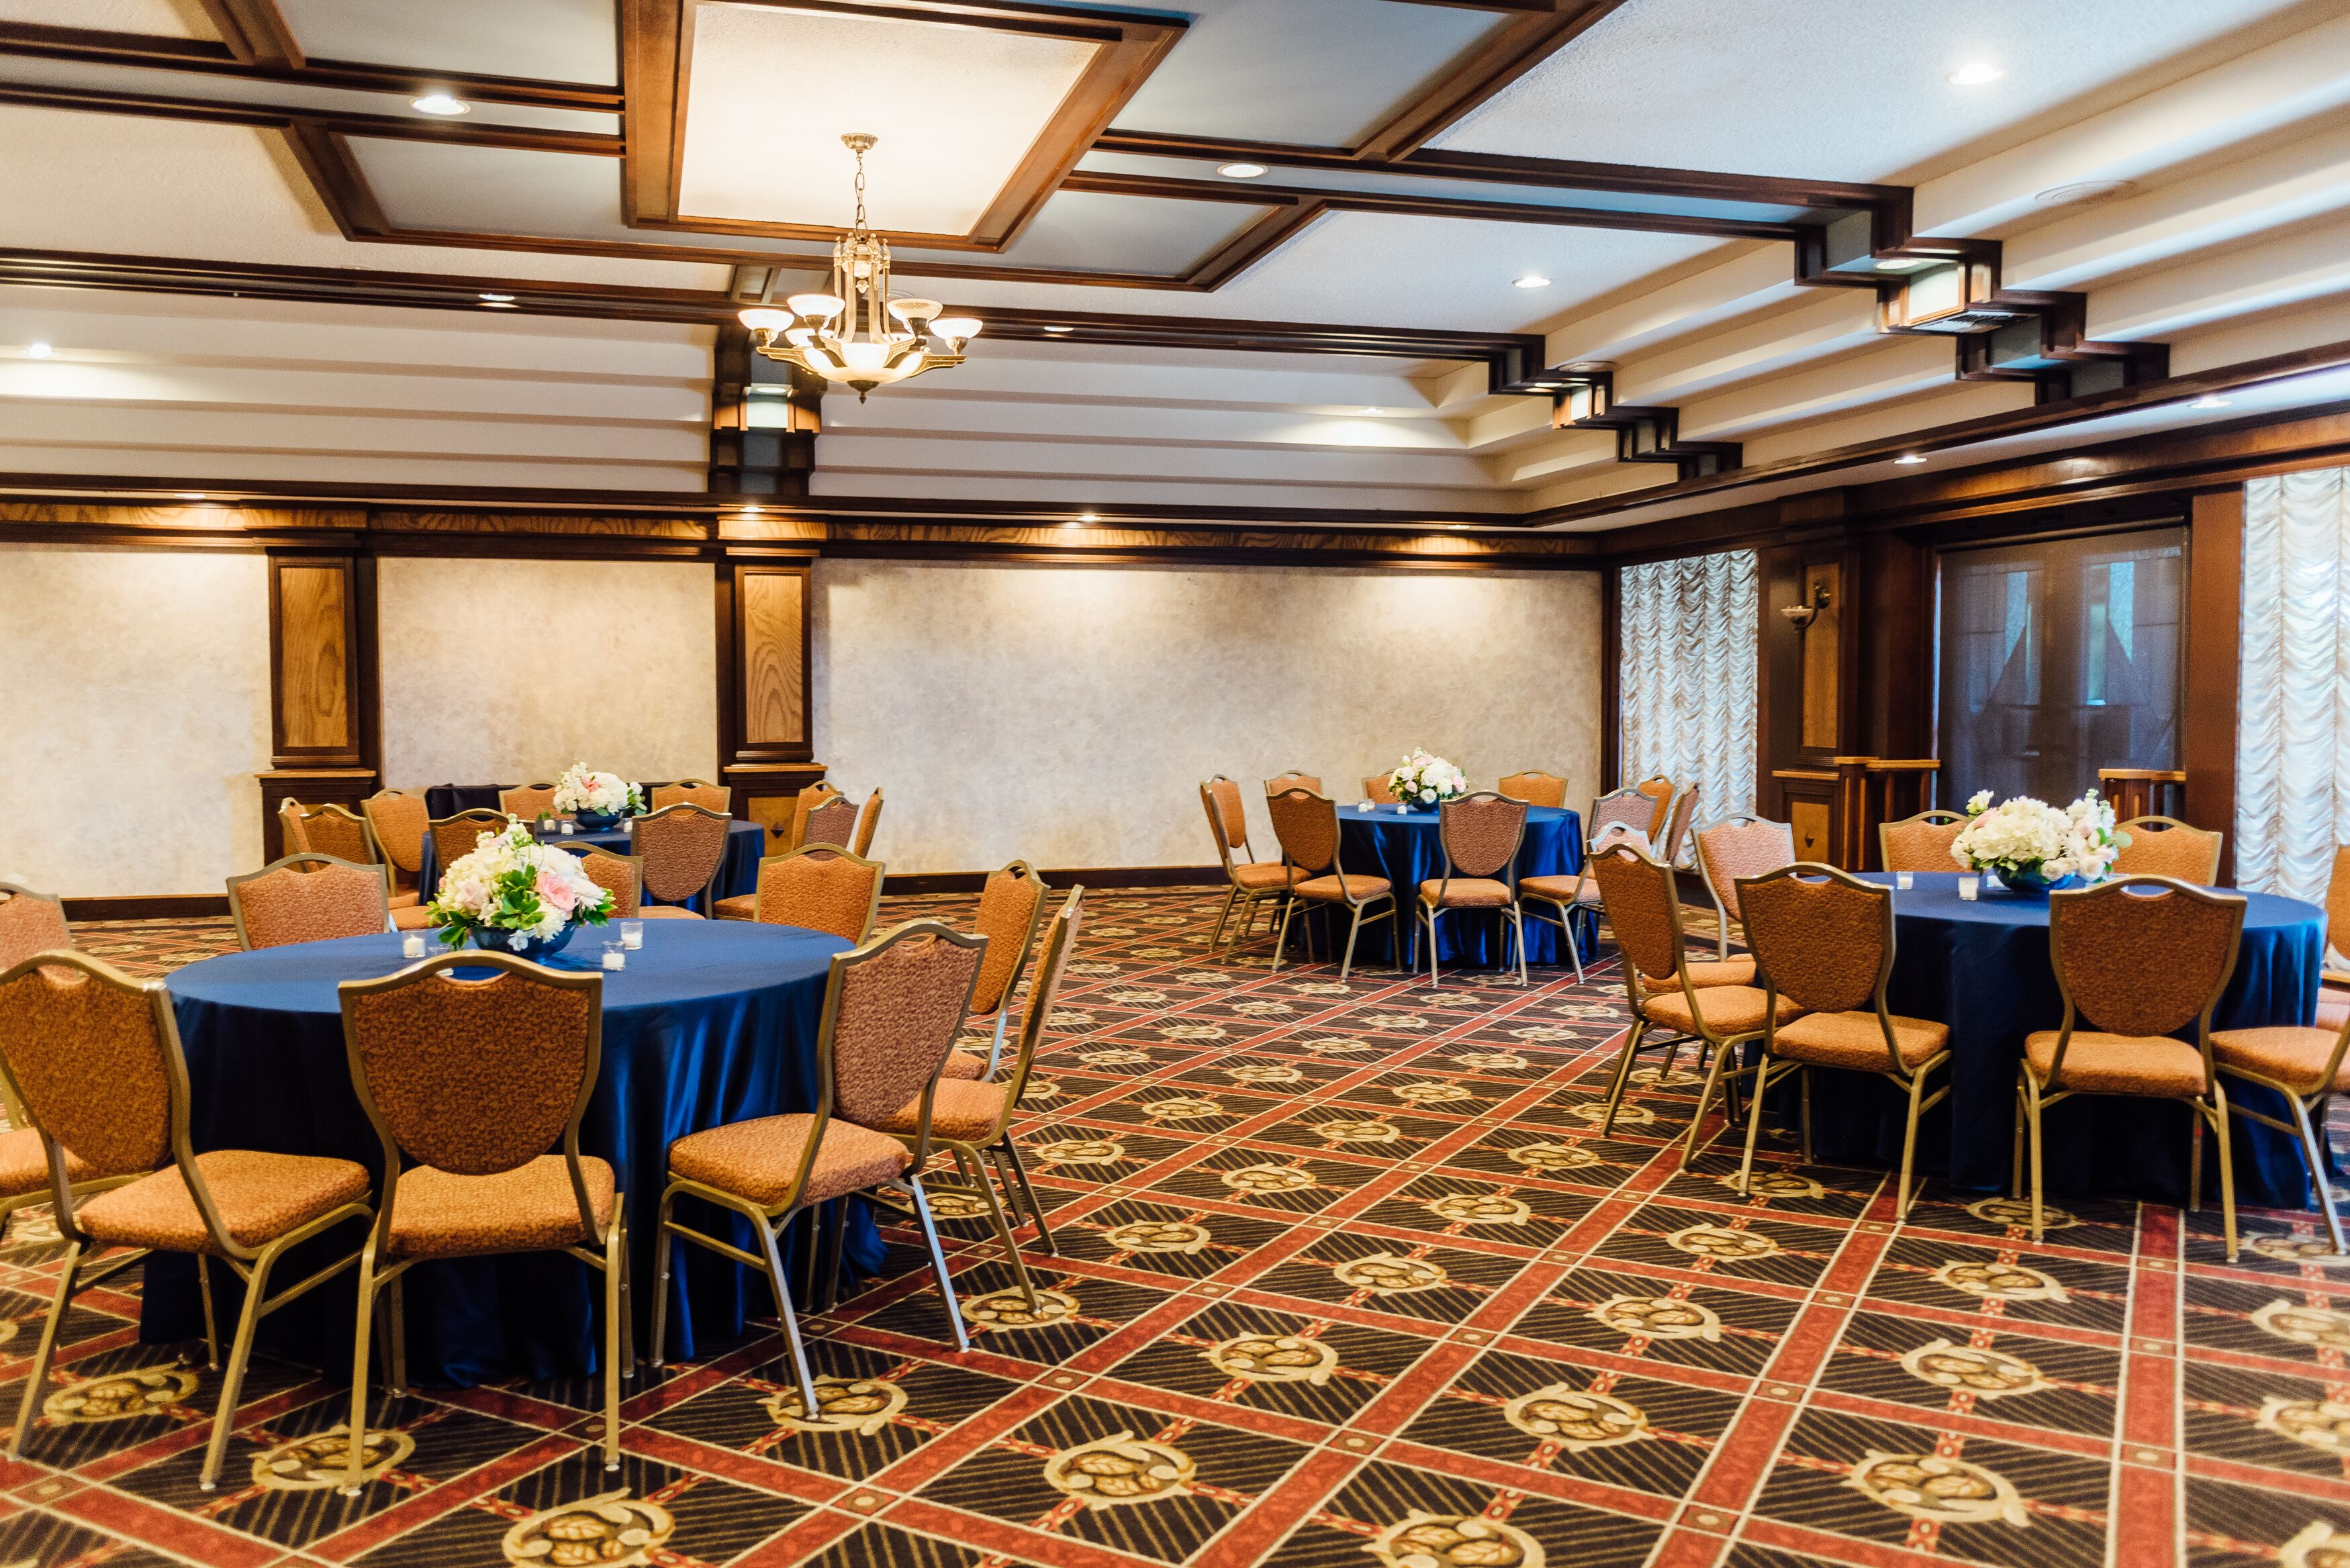 Wedding Venues in Lubbock, TX - The Knot